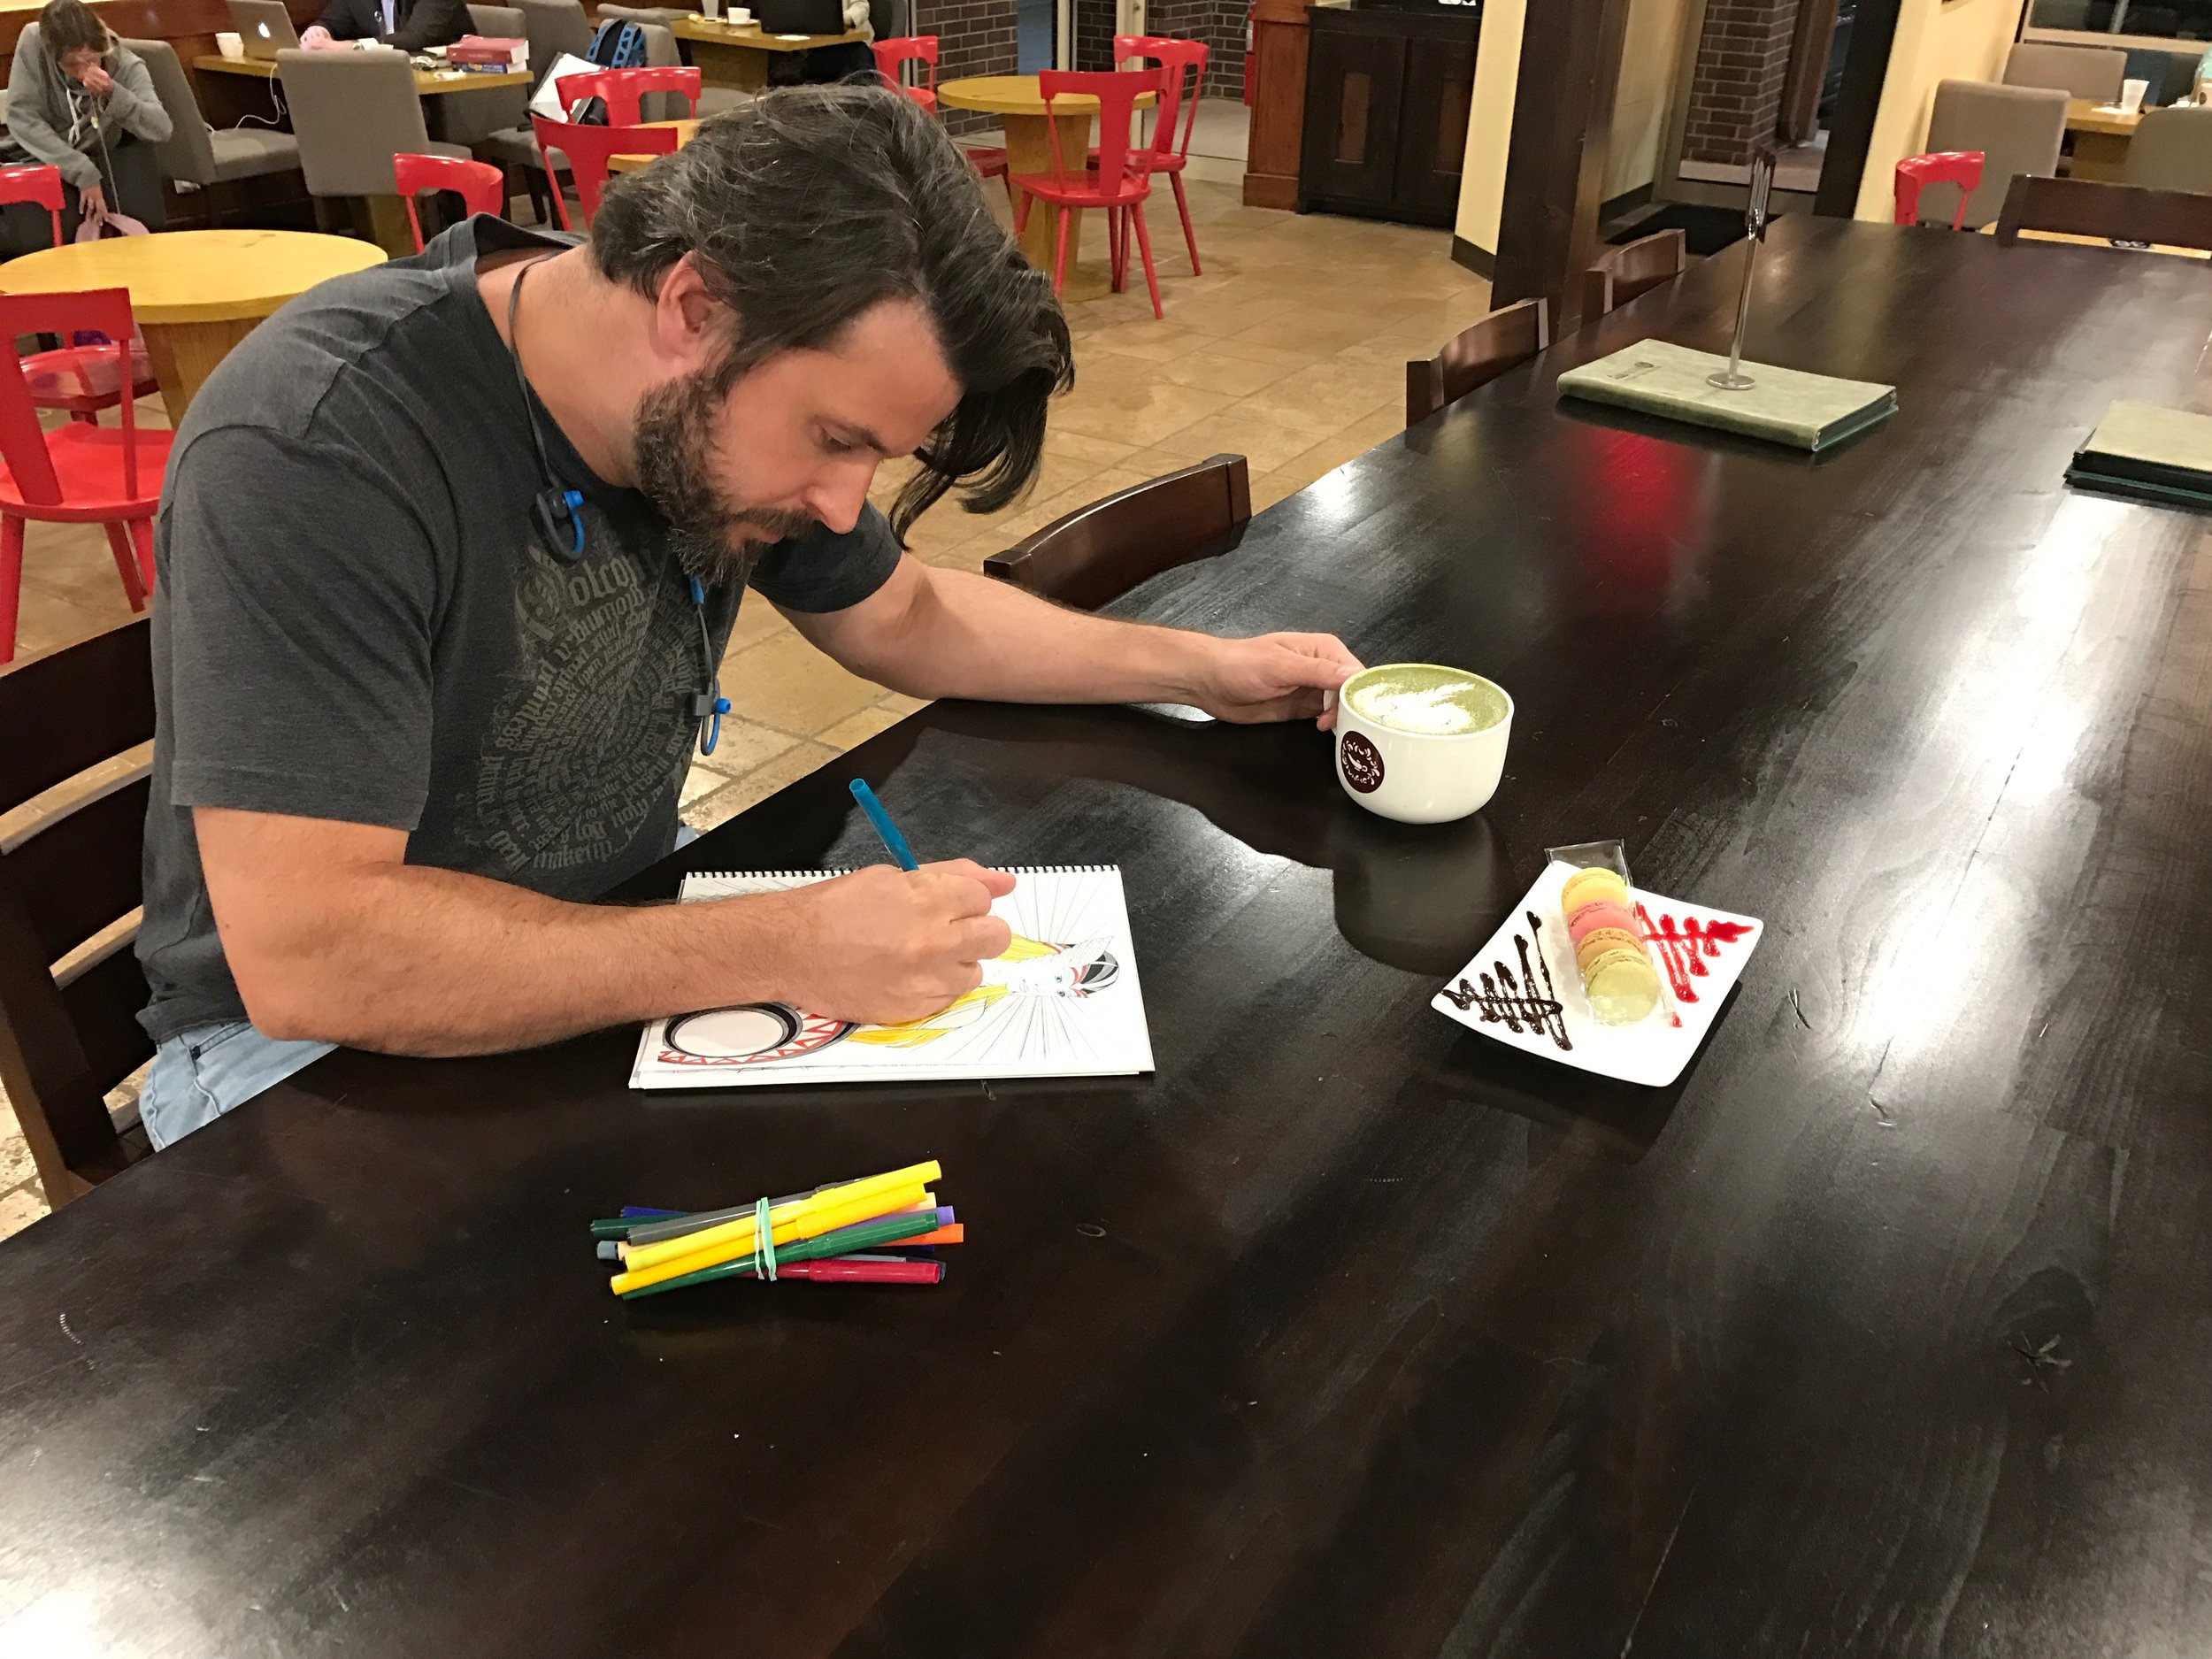 Zach relaxing in a coffee shop coloring  Legends of Norse adult-themed coloring book.